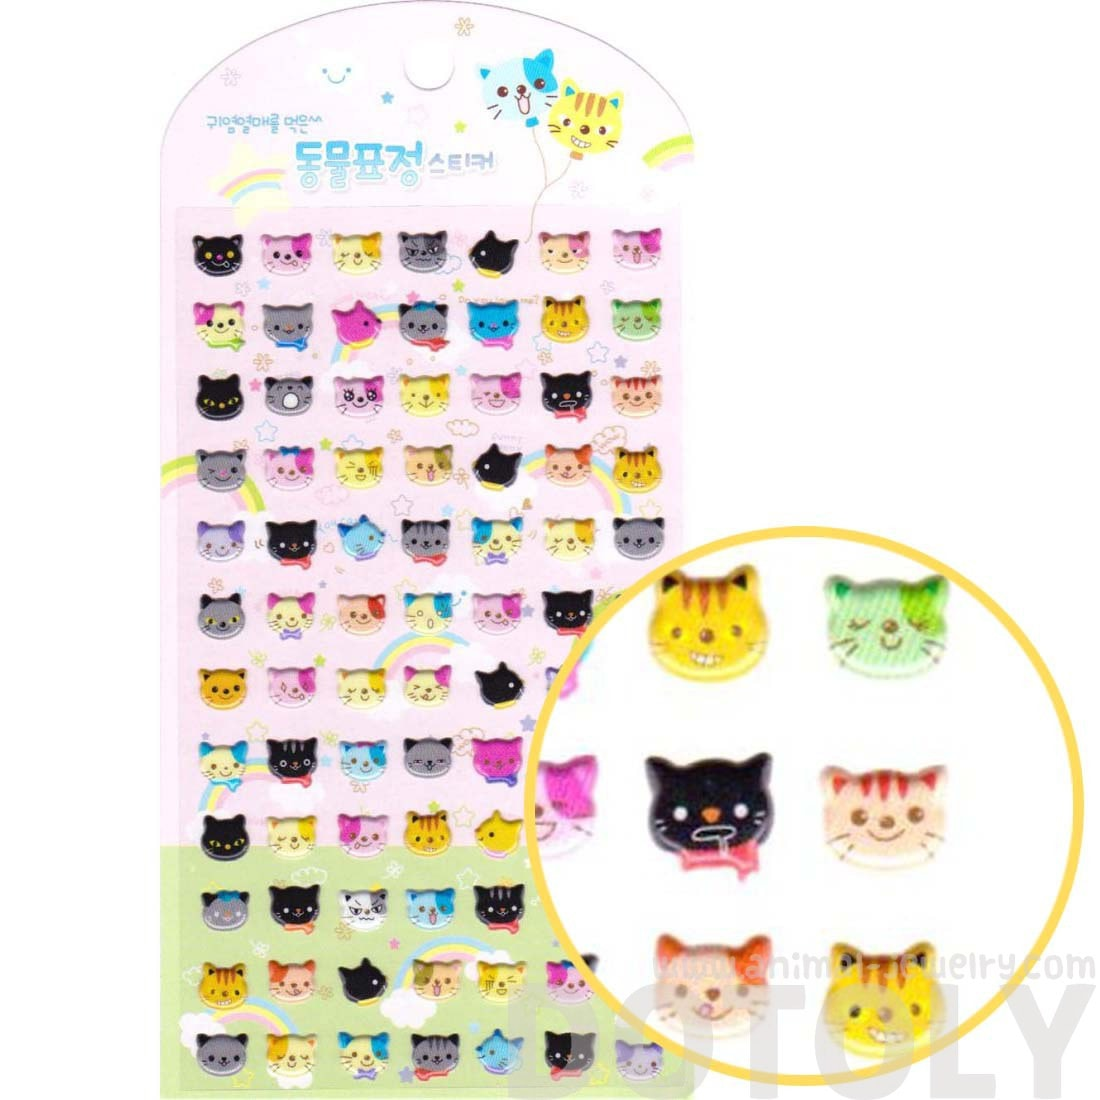 Adorable Kitty Cat Face Shaped Animal Spongy Stickers